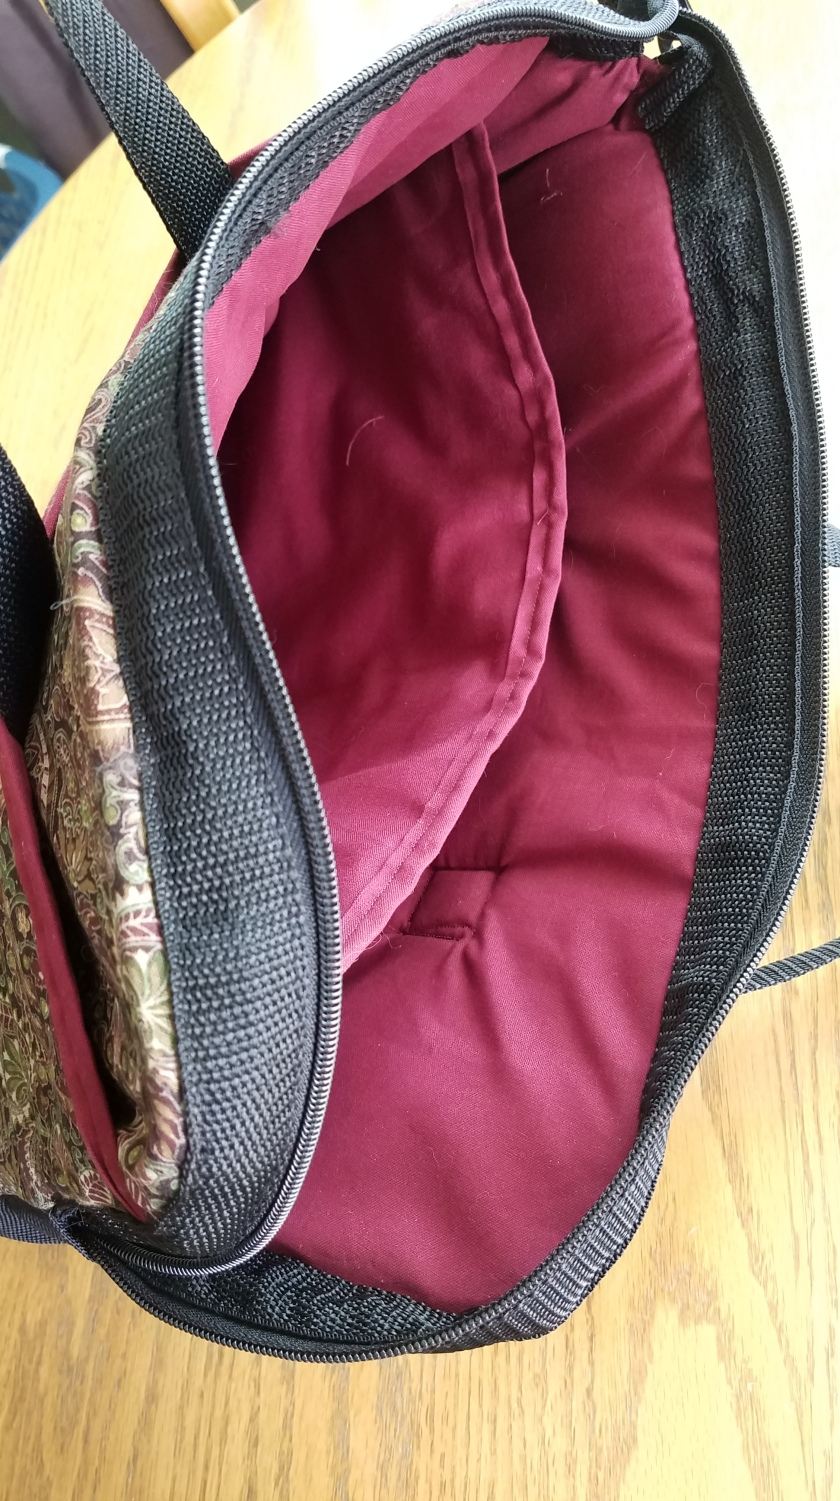 Laptop Bag: Finished Inside